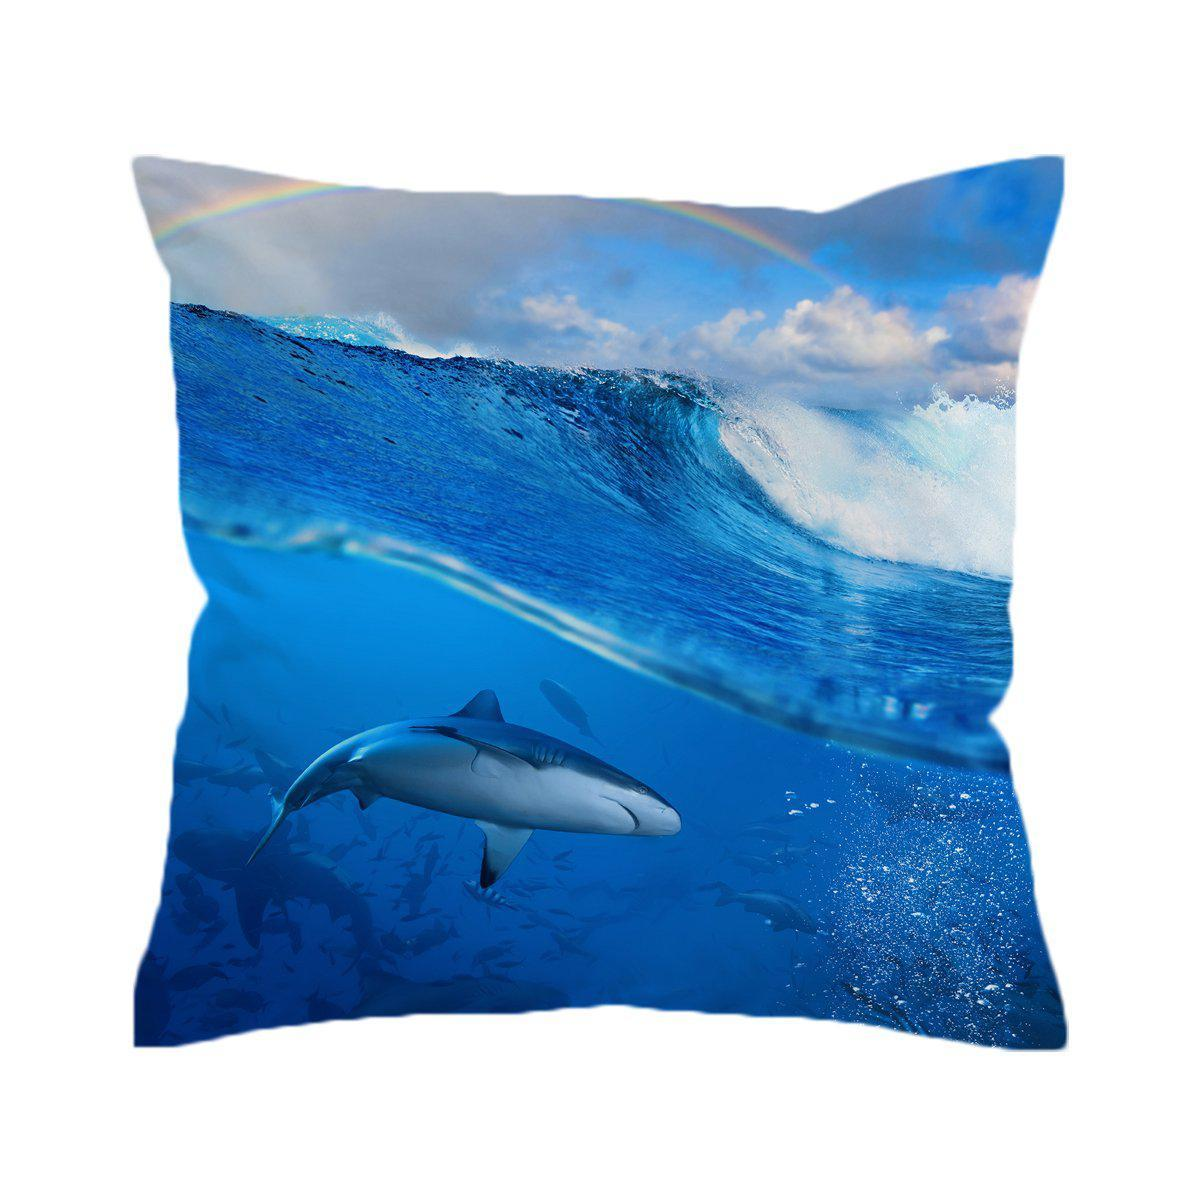 The Shark Pillow Cover-Coastal Passion